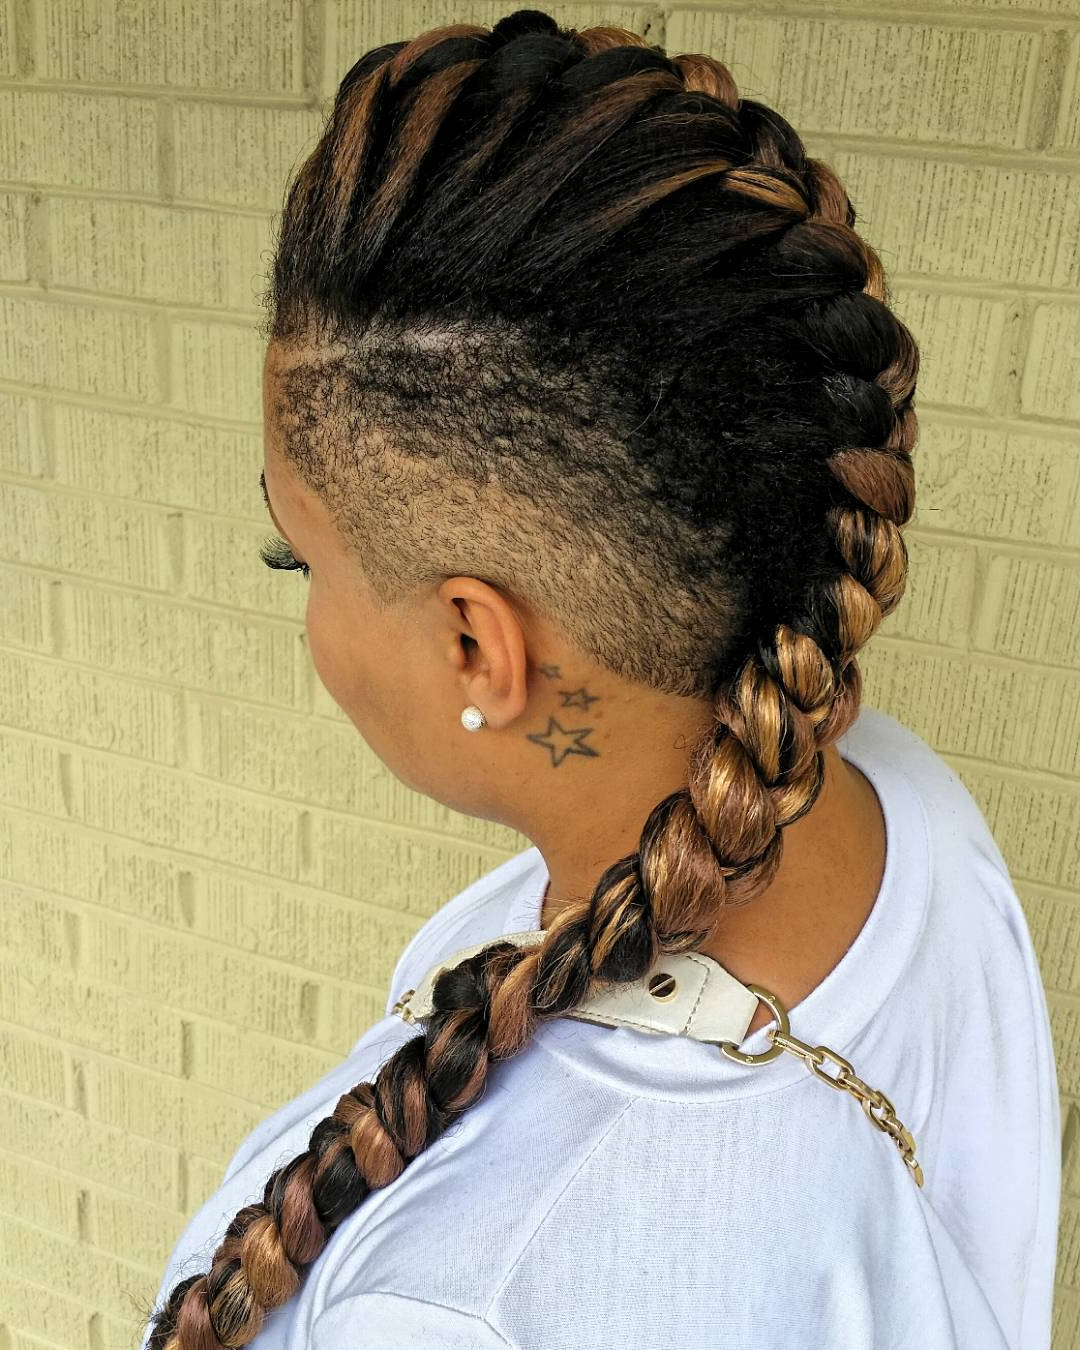 Mohawk Braids: 12 Braided Mohawk Hairstyles That Get Attention Throughout Widely Used Twist Braided Mohawk Hairstyles (View 10 of 20)